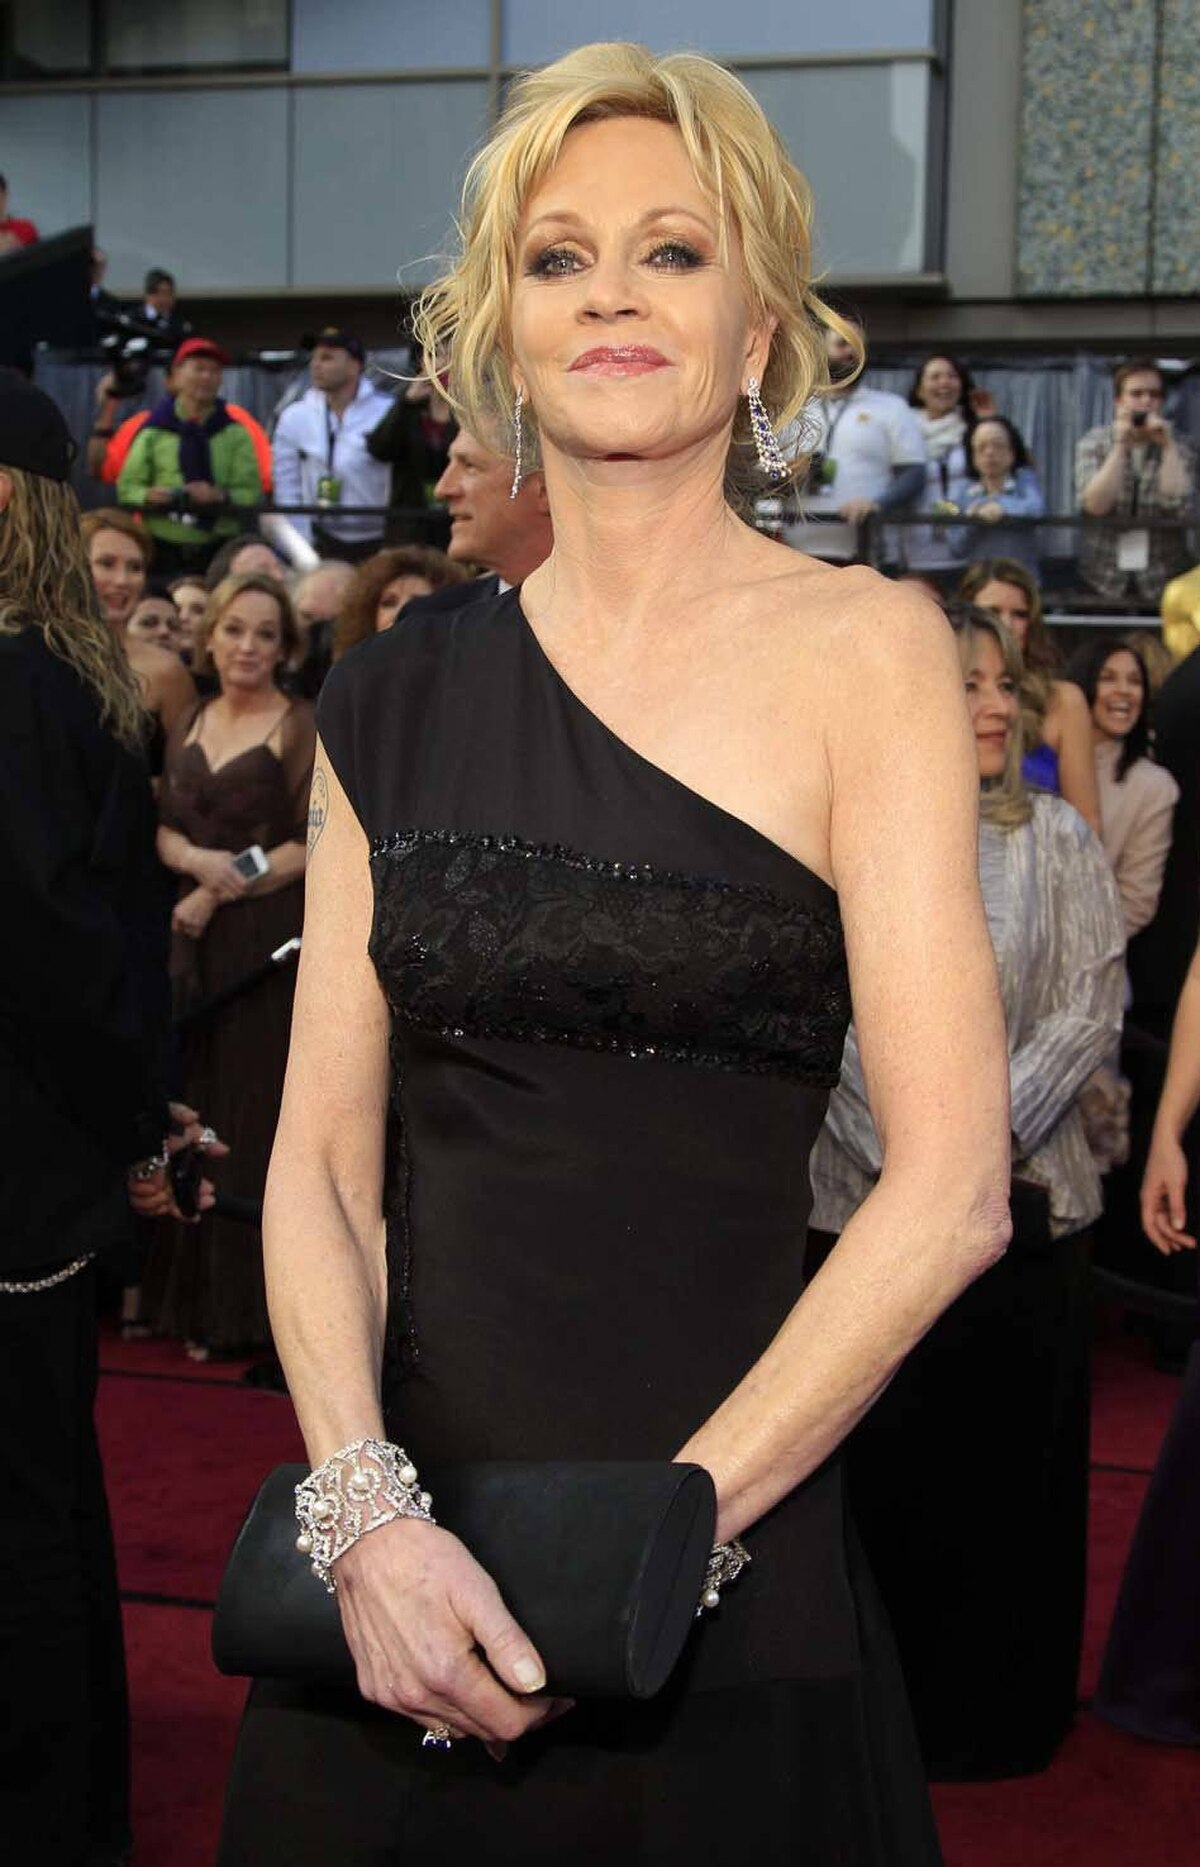 Melanie Griffith is standing by herself and proud of it! On the red carpet at the Oscars on Sunday.